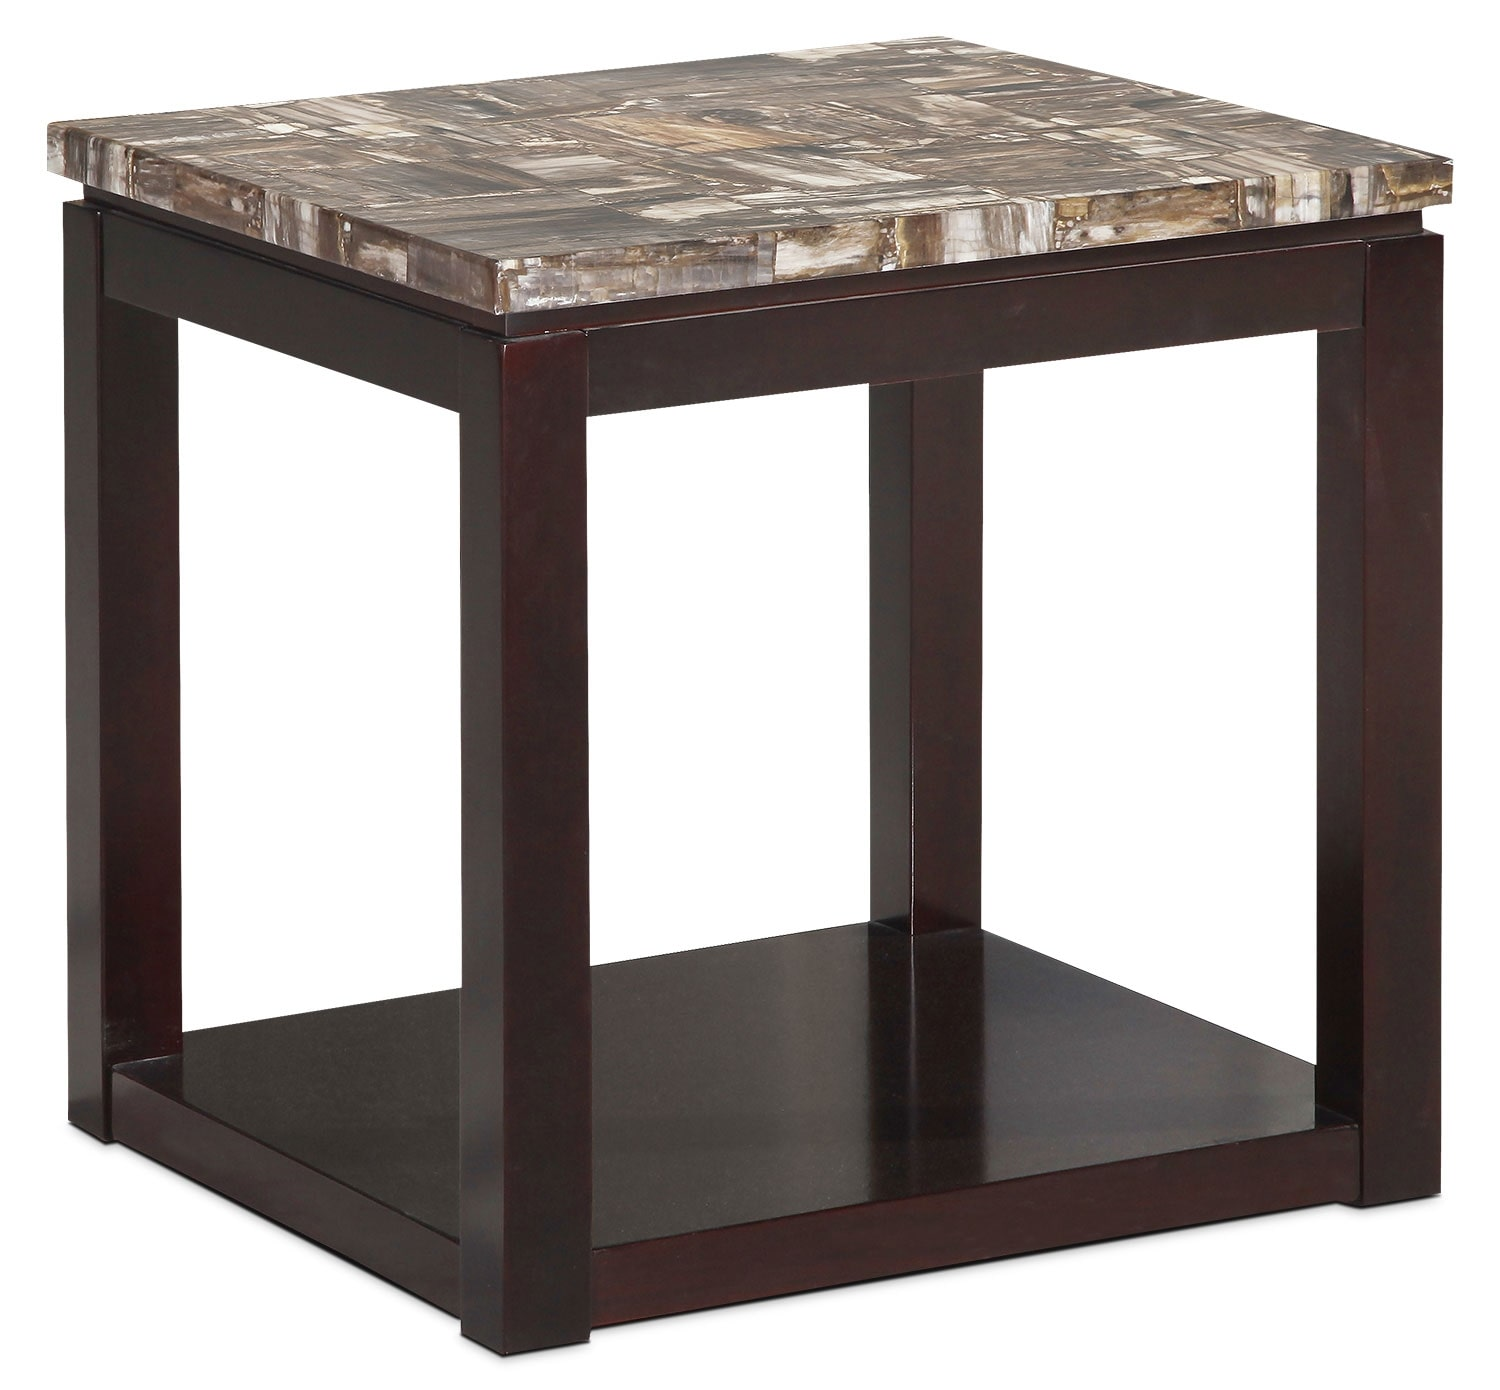 Sicily Coffee Table With Lift Top And Casters Beige